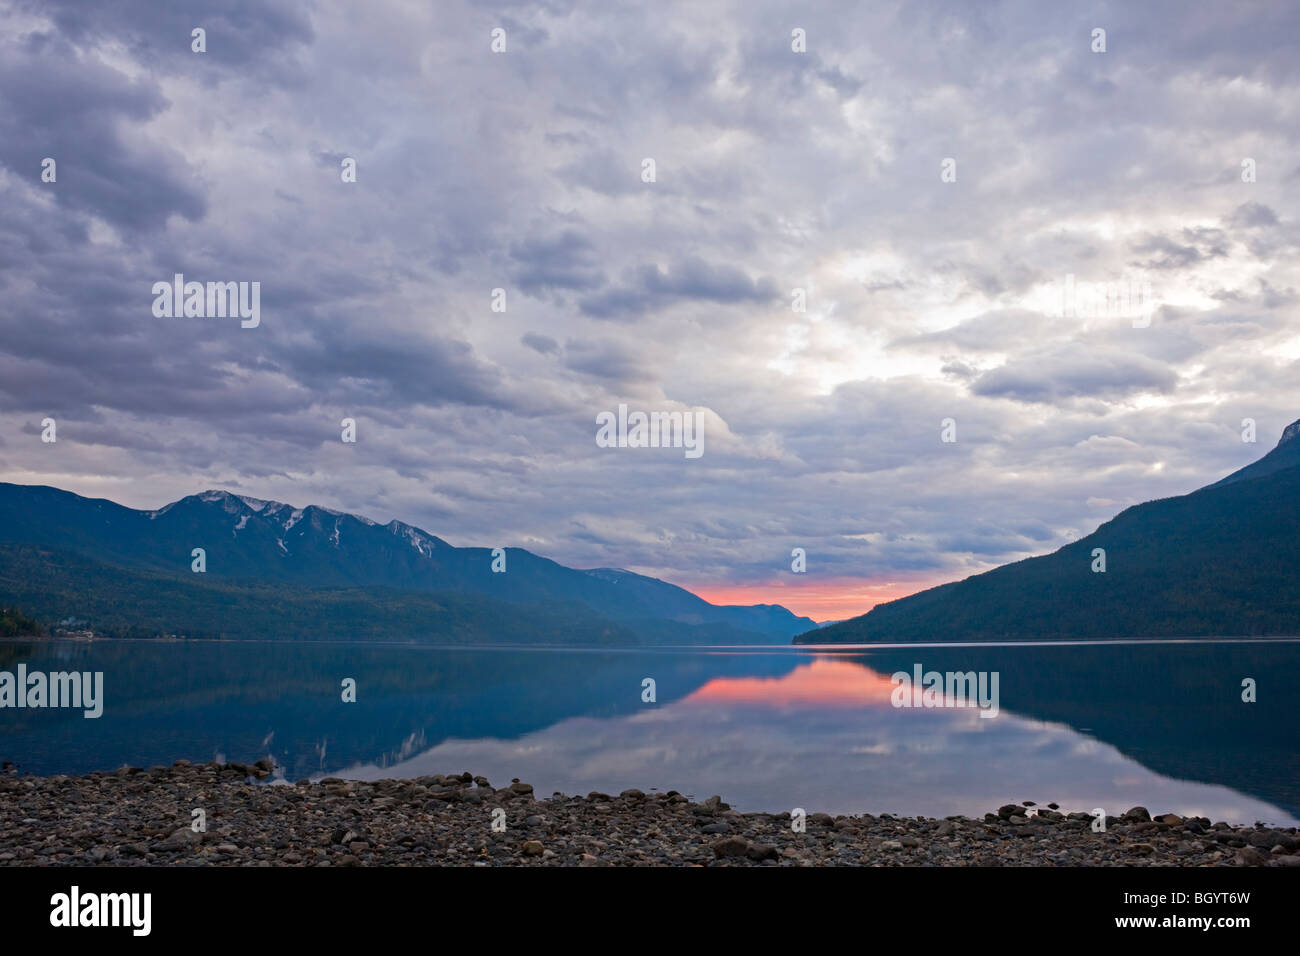 Lac Slocan au coucher du soleil de la ville de New Denver, Slocan Valley, Central Kootenay, Colombie-Britannique, Photo Stock